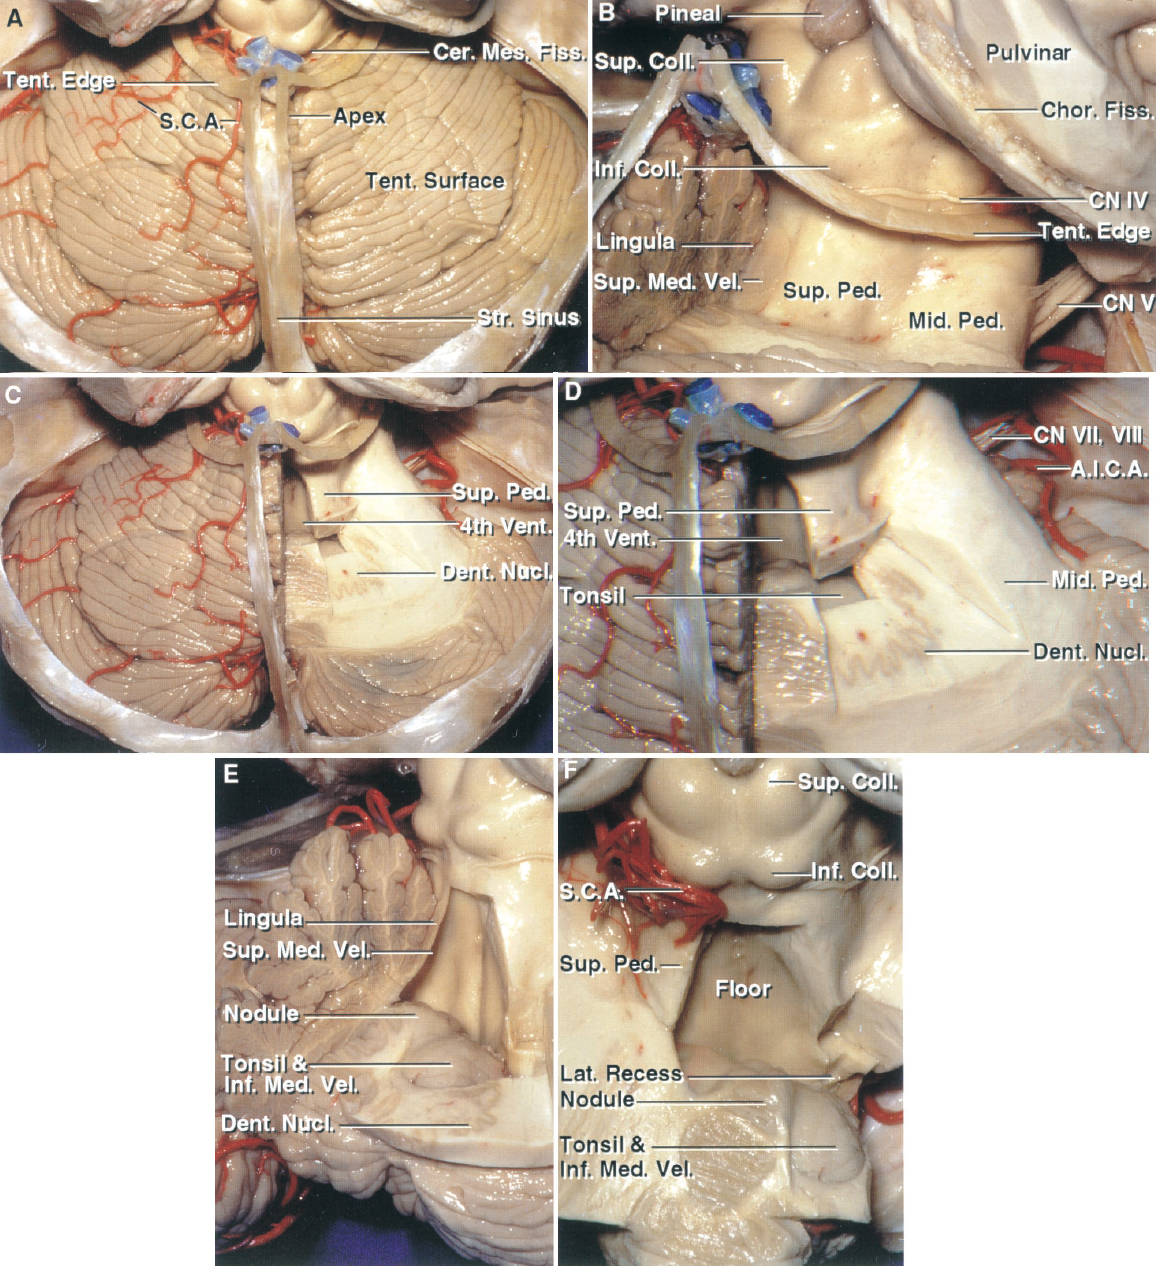 Figure 1.4 Tentorial surface and cerebellomesencephalic fissure. A, the tentorial cerebellar surface faces the tentorium and slopes downward from its apex located below the tentorial apex. The cerebellomesencephalic fissure extends forward between the cerebellum and midbrain. This surface, in which the vermis is the highest part, differs from the suboccipital surface in which the vermis is folded into a deep cleft, the incisura, between the cerebellar hemispheres. The straight sinus and tentorial edge have been preserved. The SCA exits the cerebellomesencephalic fissure and supplies the ten- torial surface. B, the right half of the posterior lip of the cerebellomesencephalic fissure has been removed. The anterior wall of the fissure is formed in the midline by the collicular plate and lingula, and laterally by the superior cerebellar peduncles. The middle cerebellar peduncle wraps around the lateral surface of the superior peduncle. The trochlear nerve arises below the inferior colliculi. C, the right half of the lingula and superior medullary velum have been removed to expose the fourth ventricle. Additional white matter has been removed below the right superior peduncle to expose the dentate nucleus in which the superior peduncular fibers arise. D, enlarged view. The dentate nucleus appears to wrap around the rostral pole of the tonsil. E, oblique view into the fourth ventricle. Additional cerebellum has been removed to expose the nodule and rostral pole of the tonsil. The dentate nucleus wraps around the rostral pole of the tonsil. The upper half of the roof is formed by the superior medullary velum, which has the lingula layered on its outer surface. The upper part of the lower half of the roof is formed by the nodule in the midline and by the inferior medullary velum laterally. The inferior medullary velum, an almost transparent membrane, stretches laterally across the upper pole of the tonsil. F, the left half of the upper part of the roof has been removed. Th